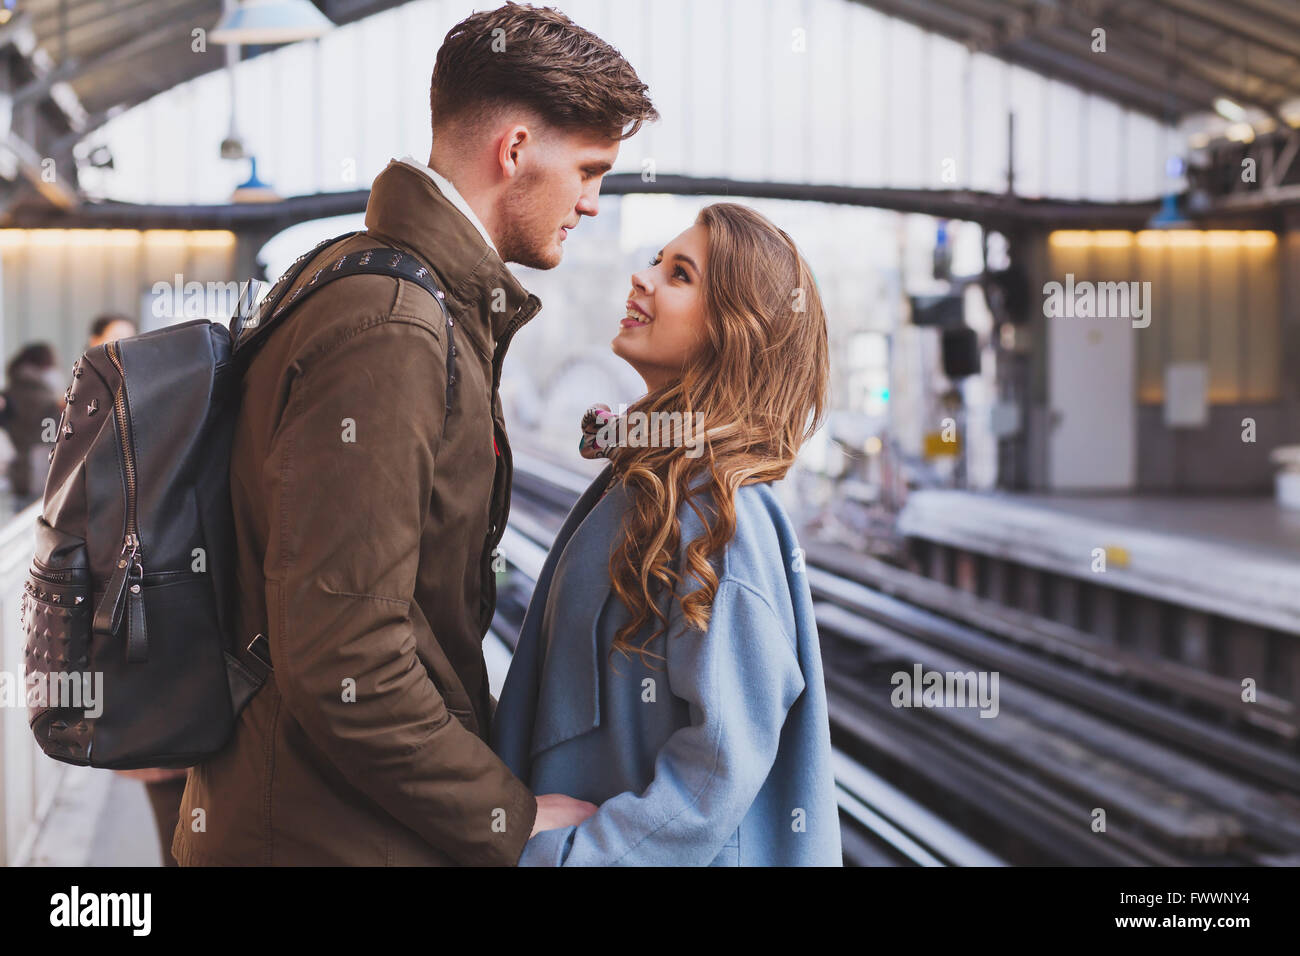 long distance relationship, couple on platform at the train station, meeting or parting concept - Stock Image